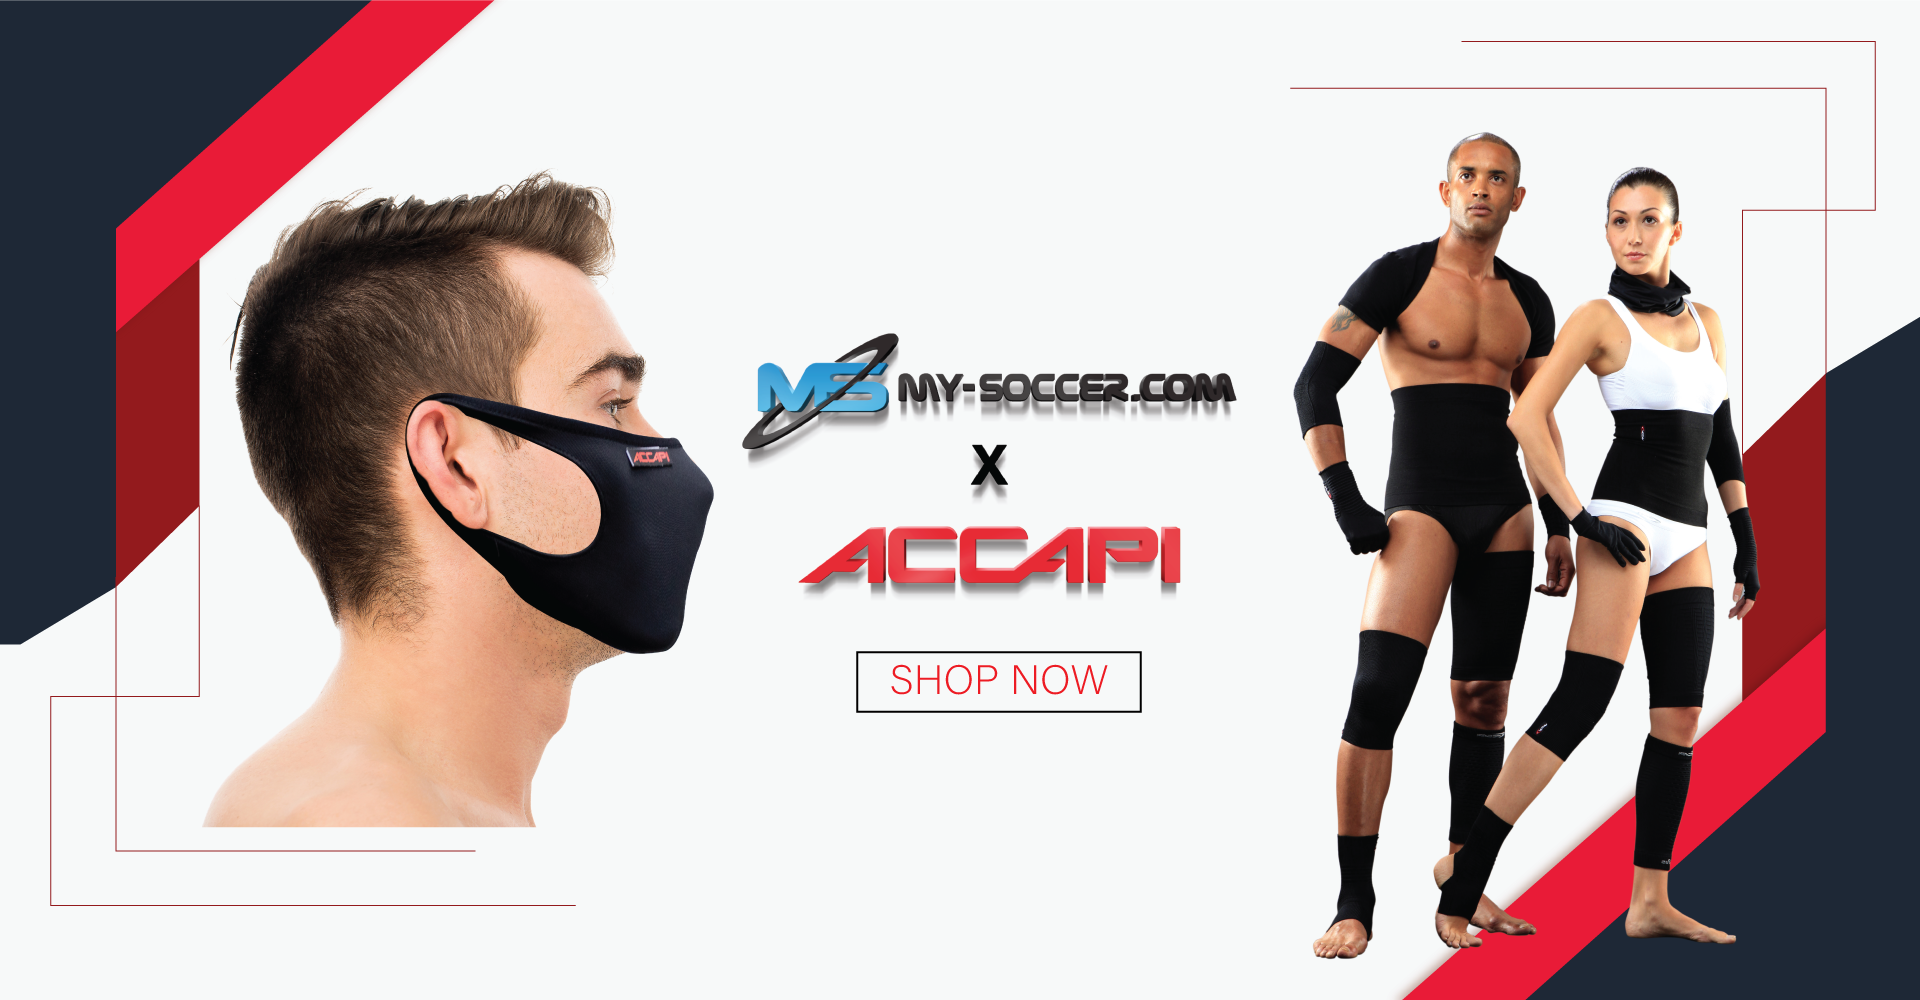 accapi X my-soccer